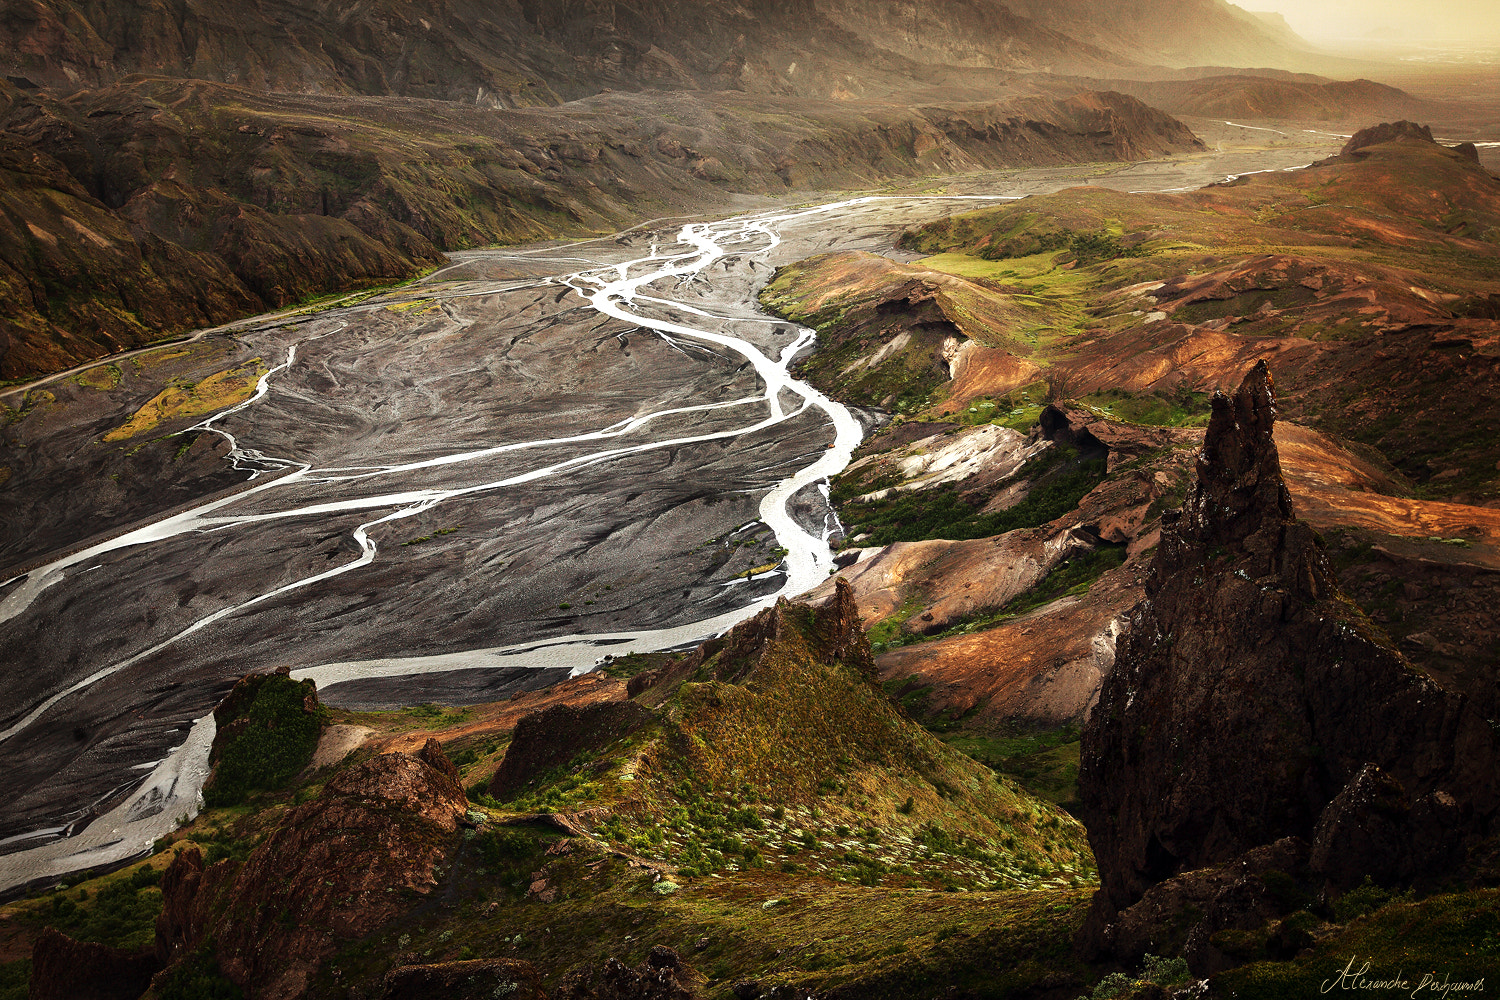 Photograph Thorsmork Valley by Alexandre Deschaumes on 500px